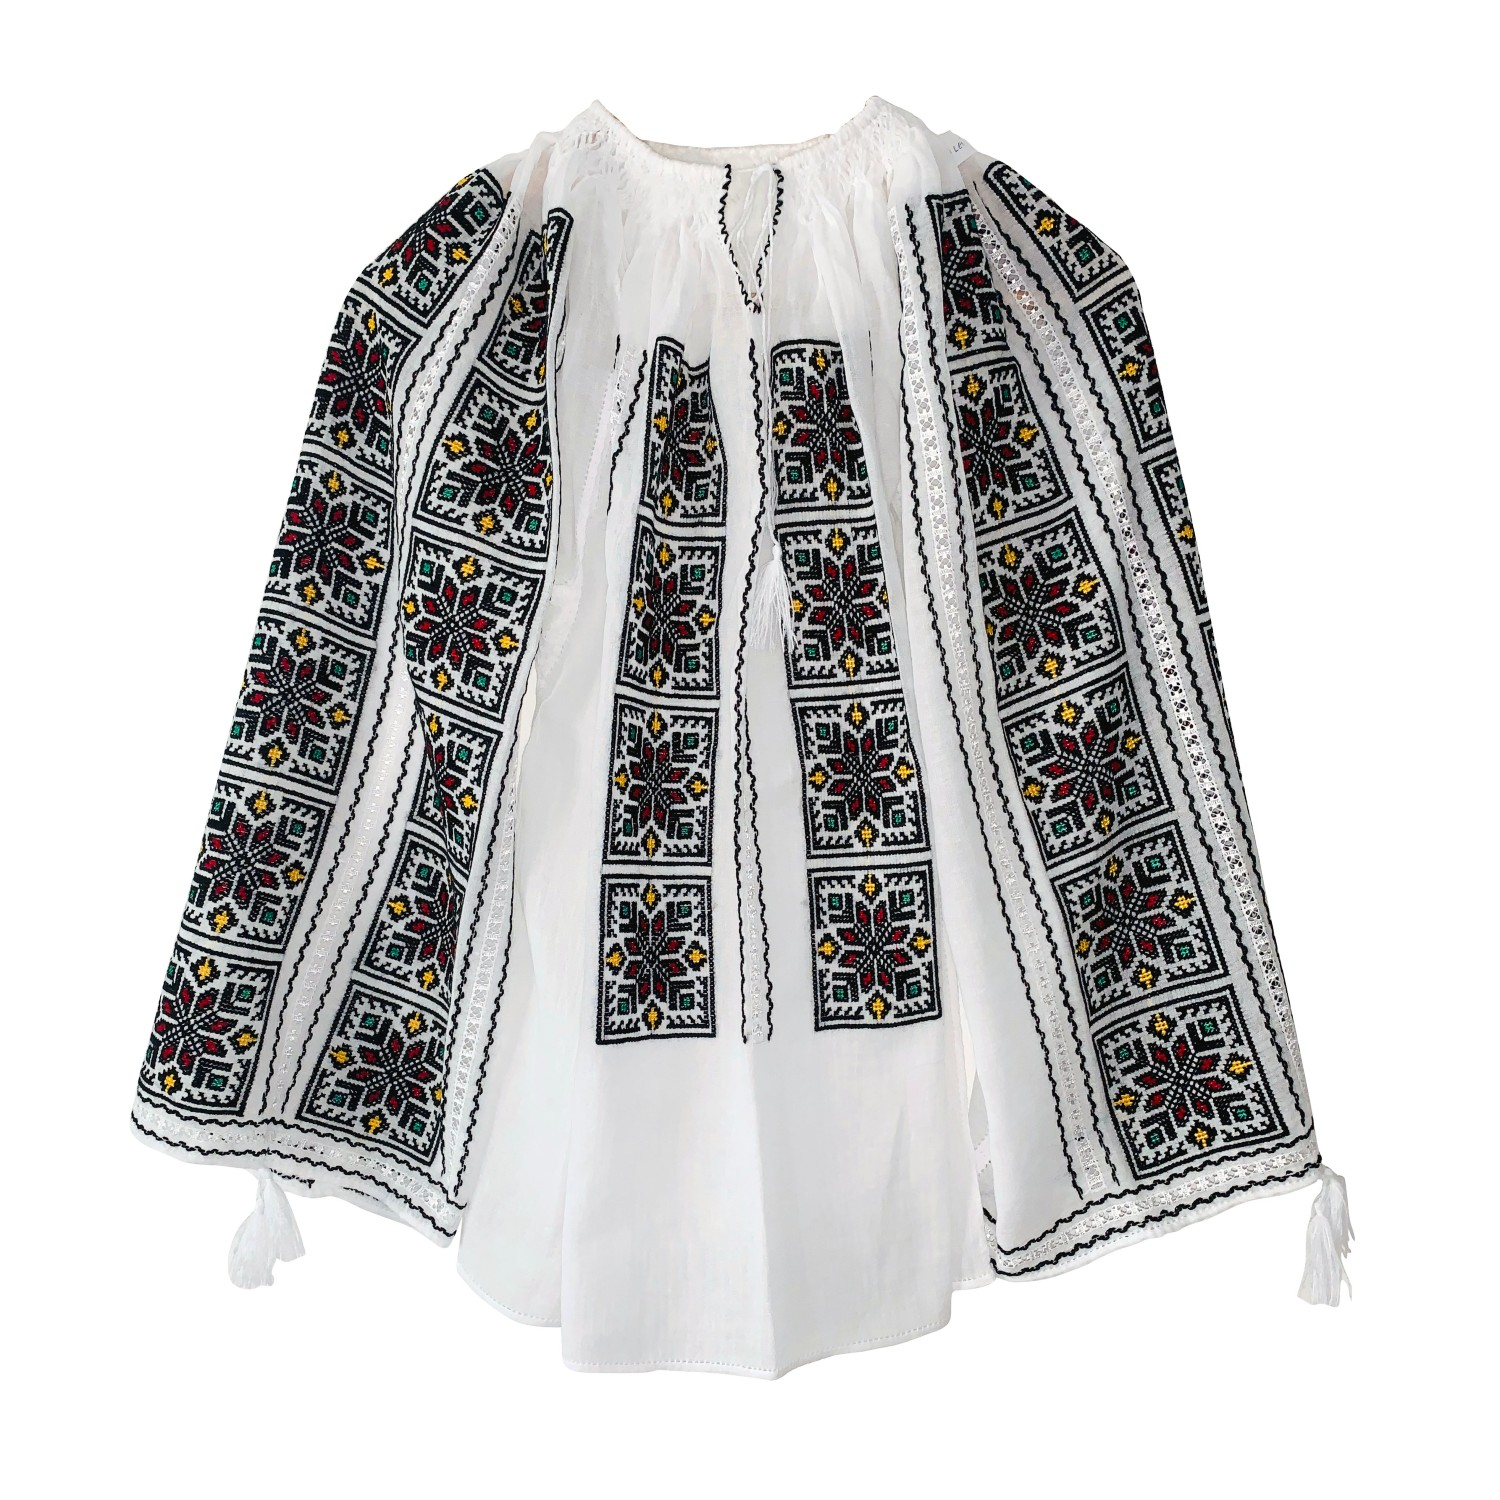 IE TRADIȚIONALĂ COD 06_Ie_Blouse_hand made_traditional_RafGallery_romanian_art_VR_gallery